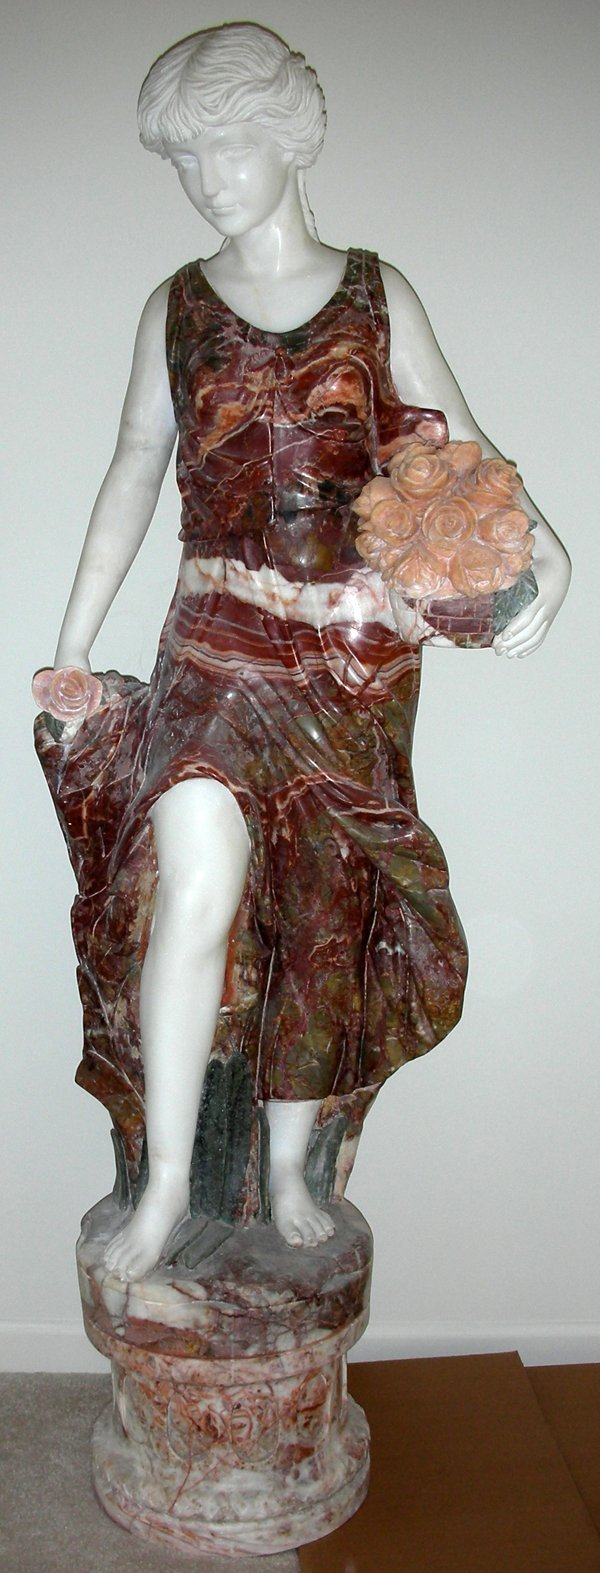 """091013: CARVED MARBLE SCULPTURE H 59"""" W 22"""", 'SPRING'"""